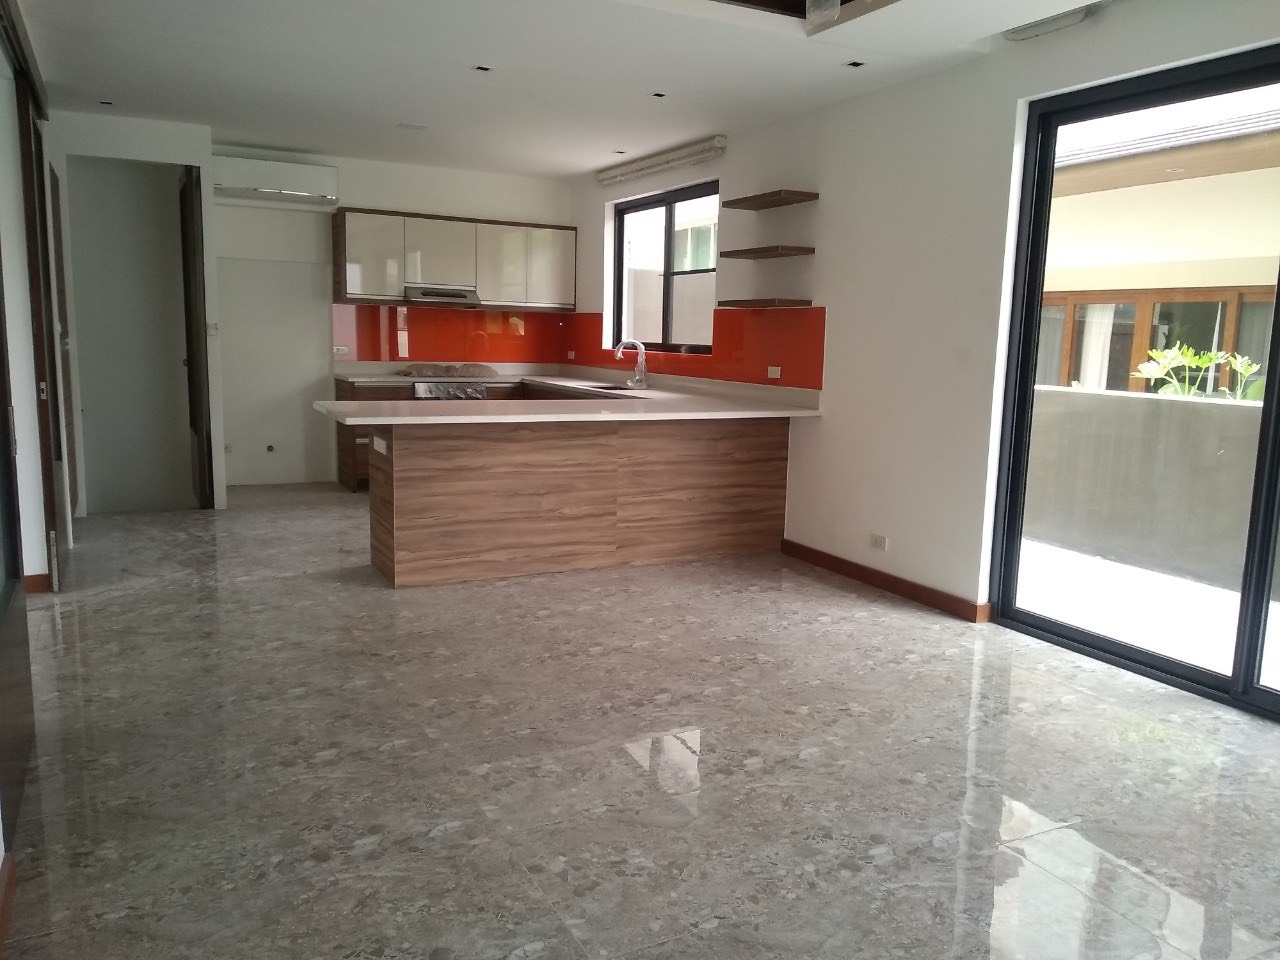 5BR House For Lease, McKinley Hill Village 5